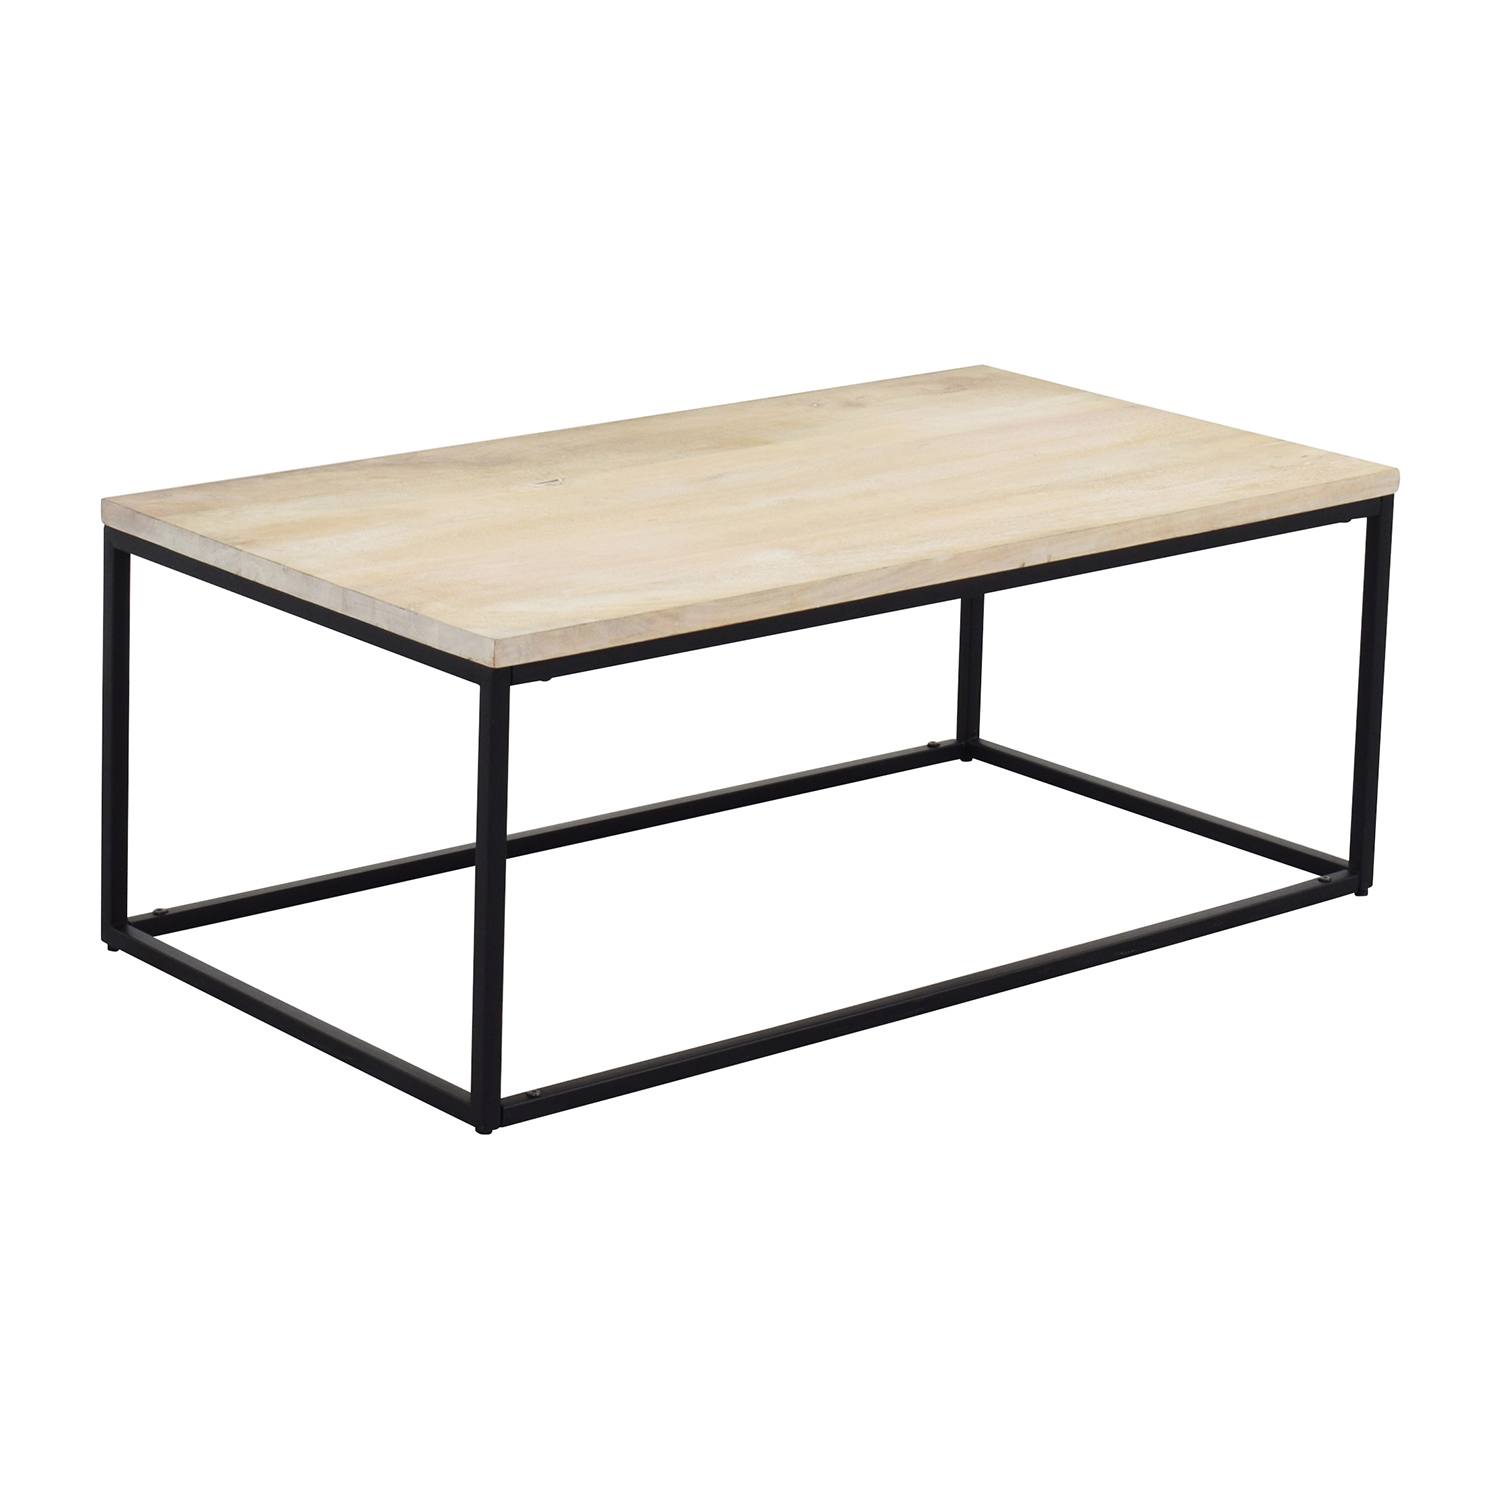 28 off west elm west elm box frame coffee table white With west elm white coffee table